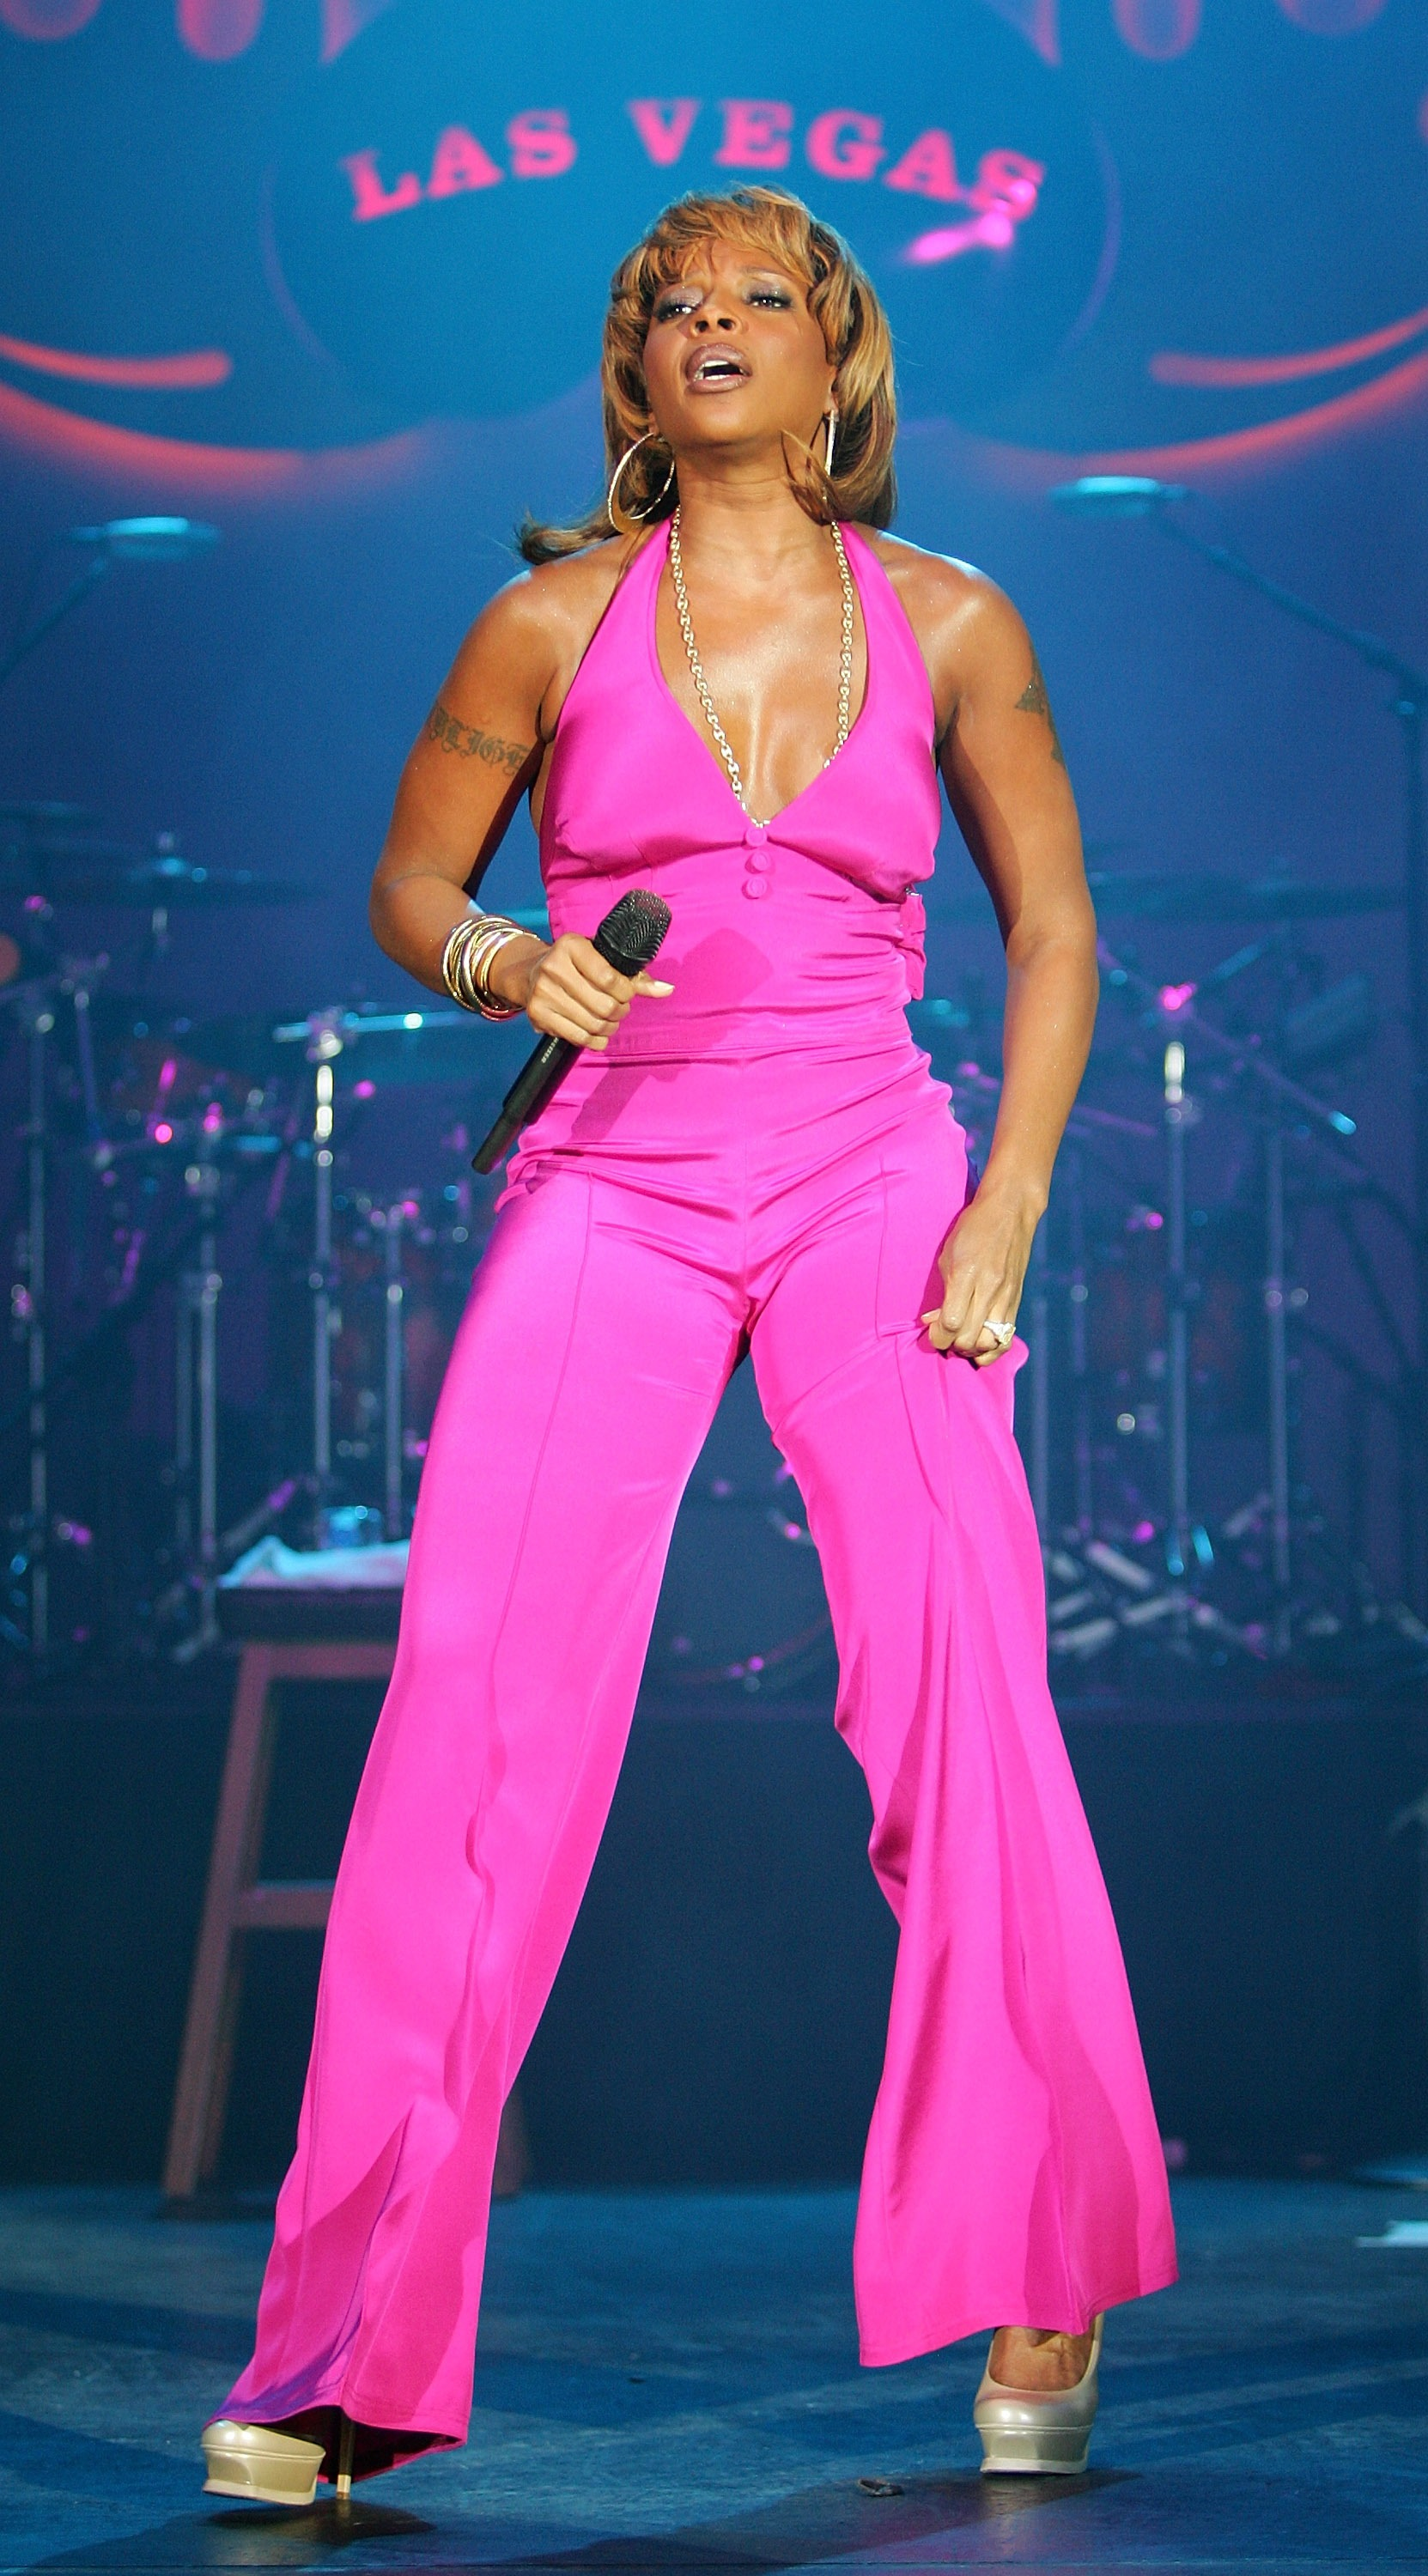 Image: Mary J. Blige In Concert At The Hard Rock Las Vegas